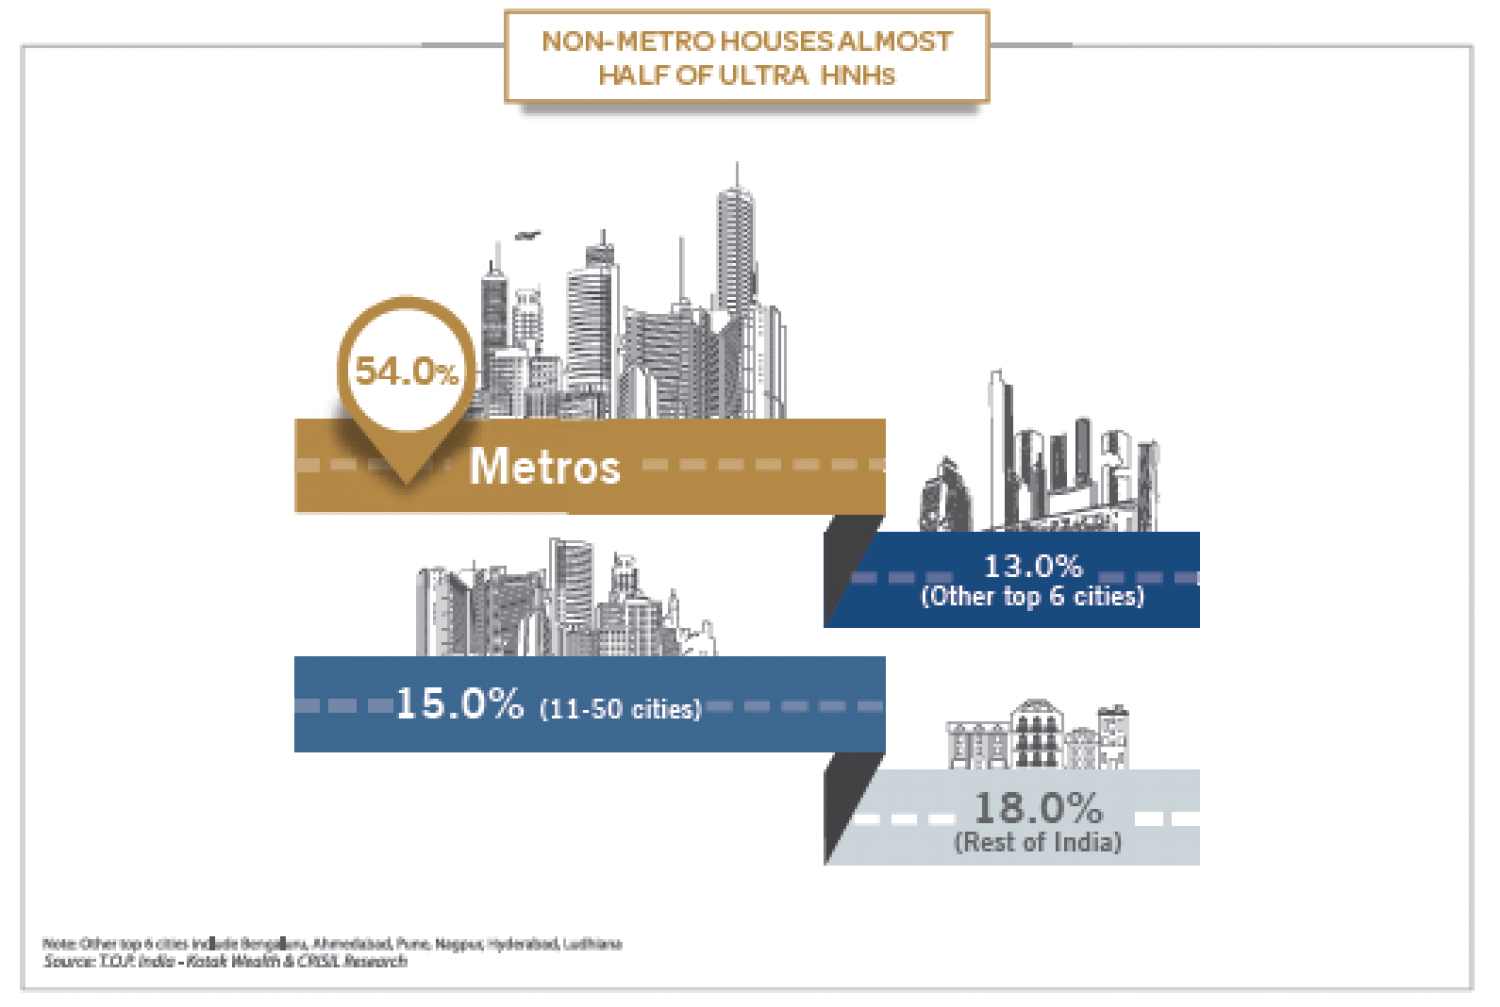 Non- Metro Houses Almost Half of HNHs Infographic